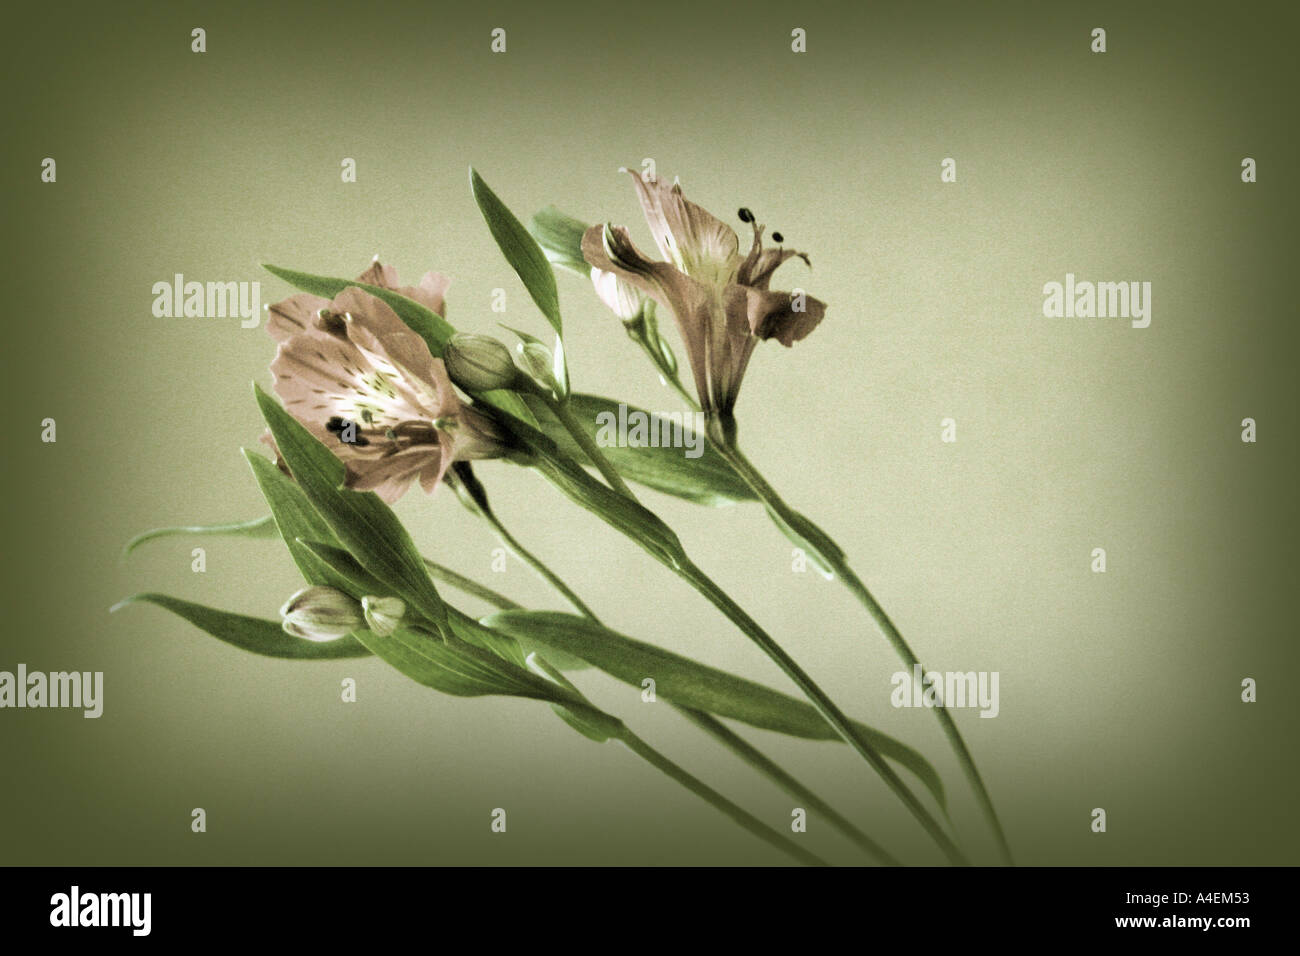 Vintage floral concept with hand tinted effect - Stock Image